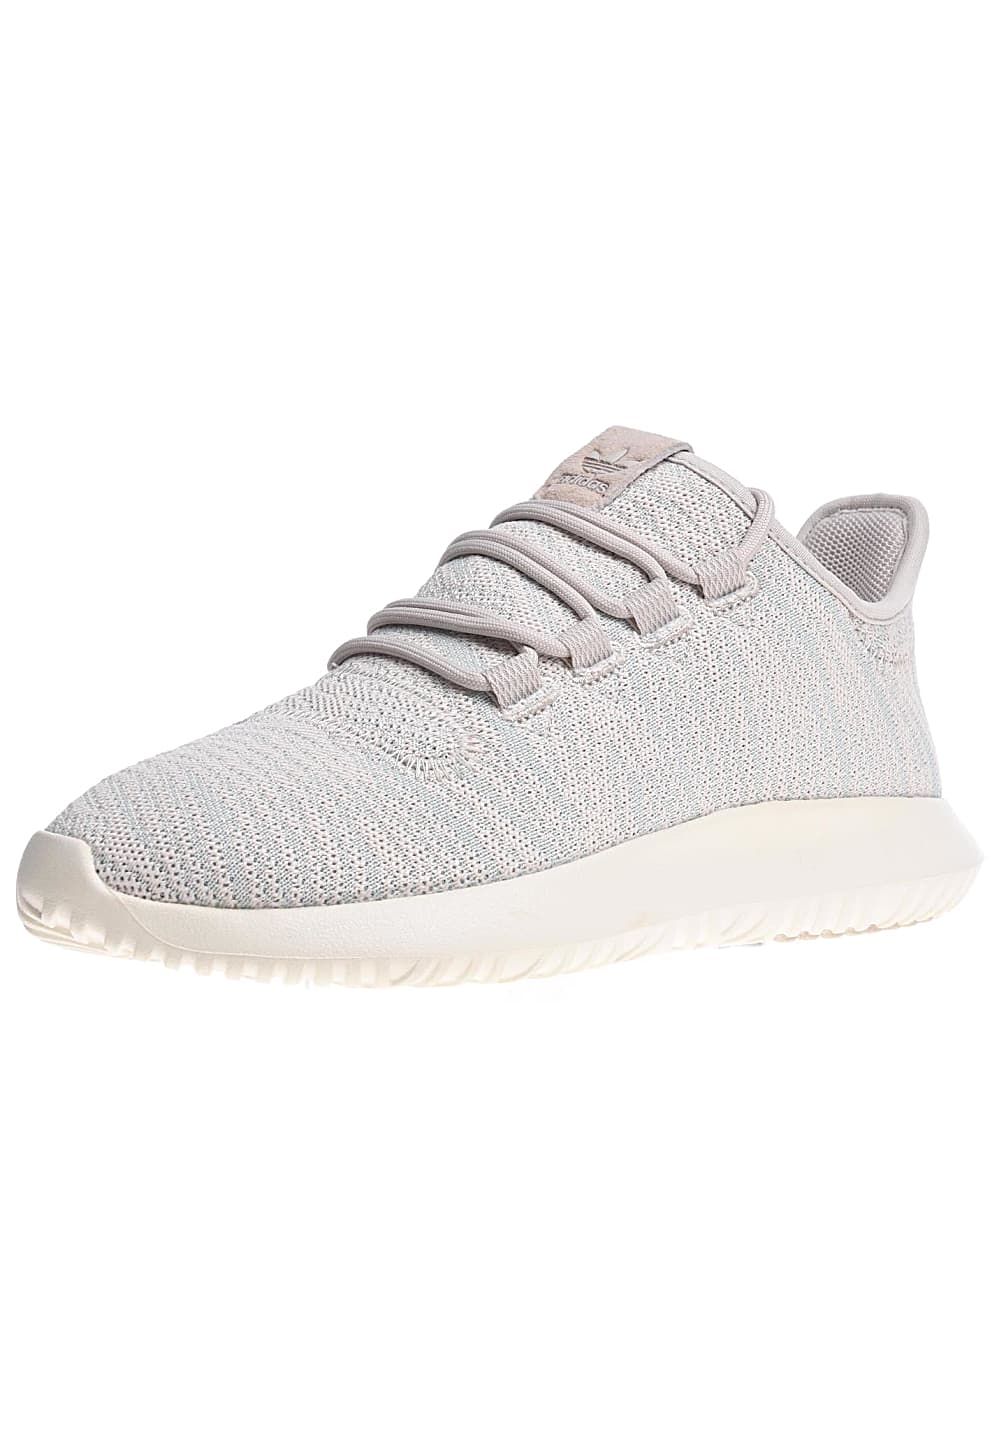 adidas Damen Tubular Dawn Sneaker, Weiß Footwear Off White